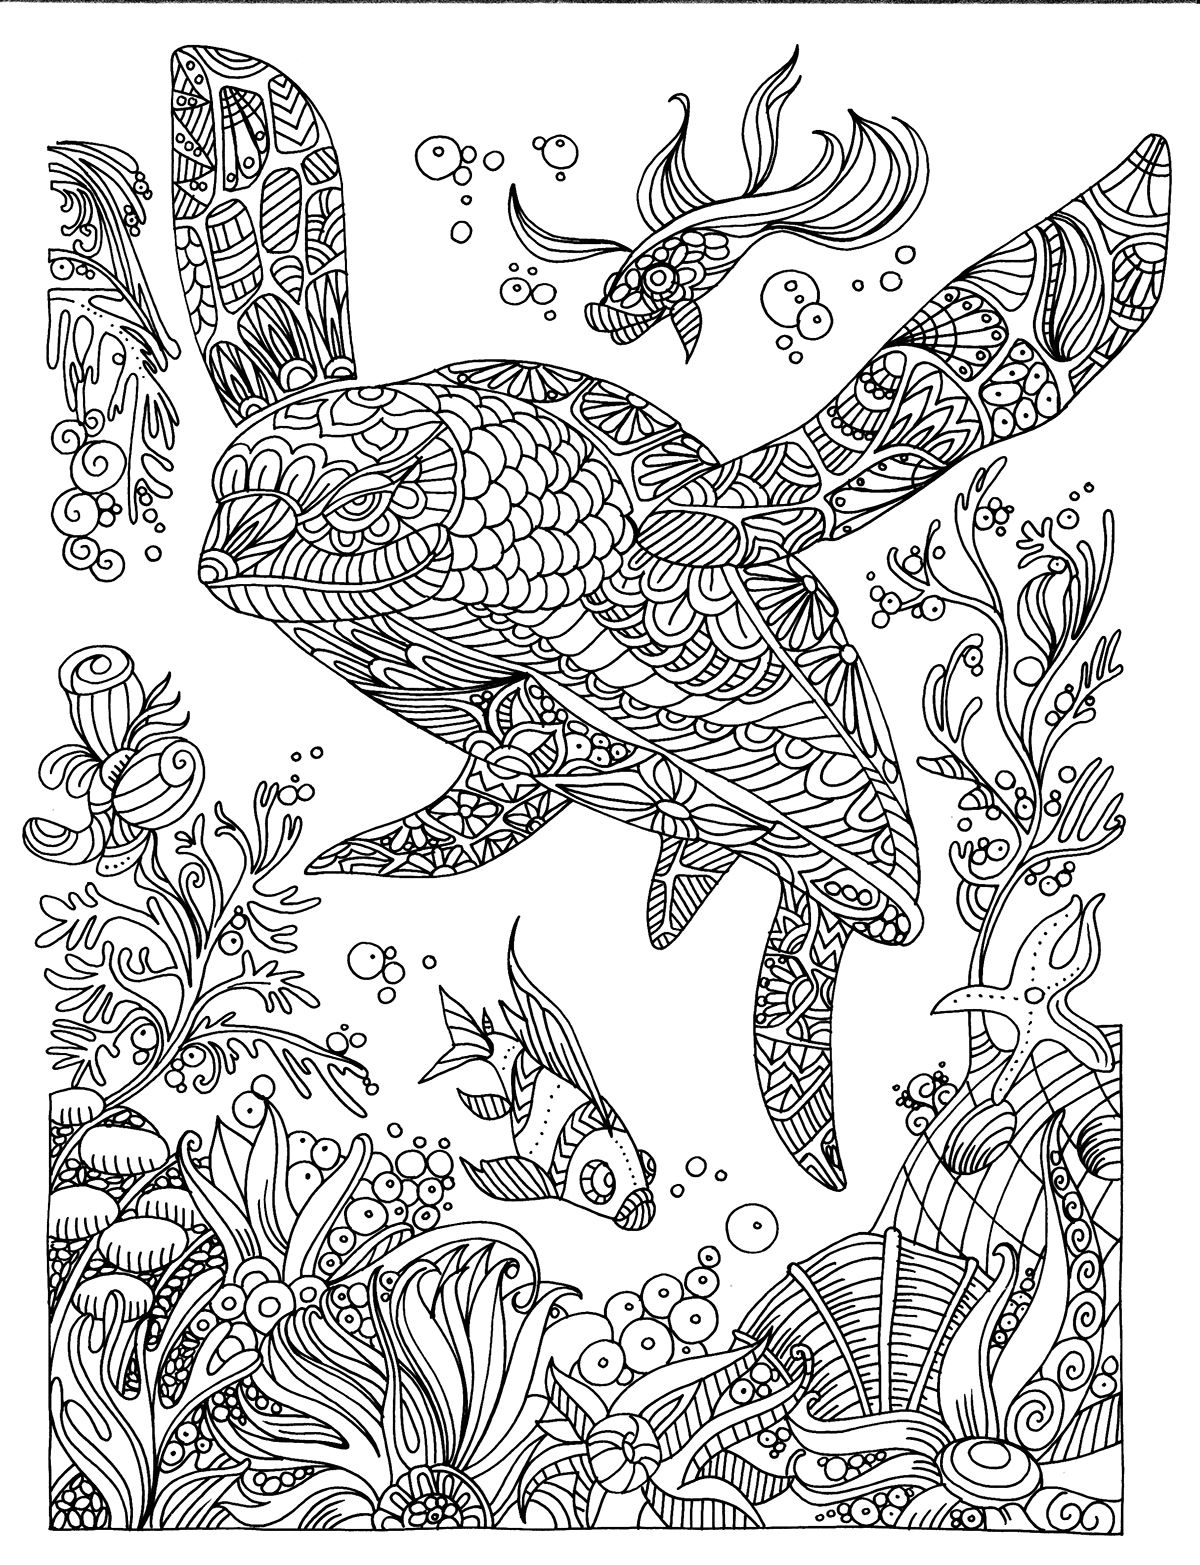 relaxing coloring pages # 6